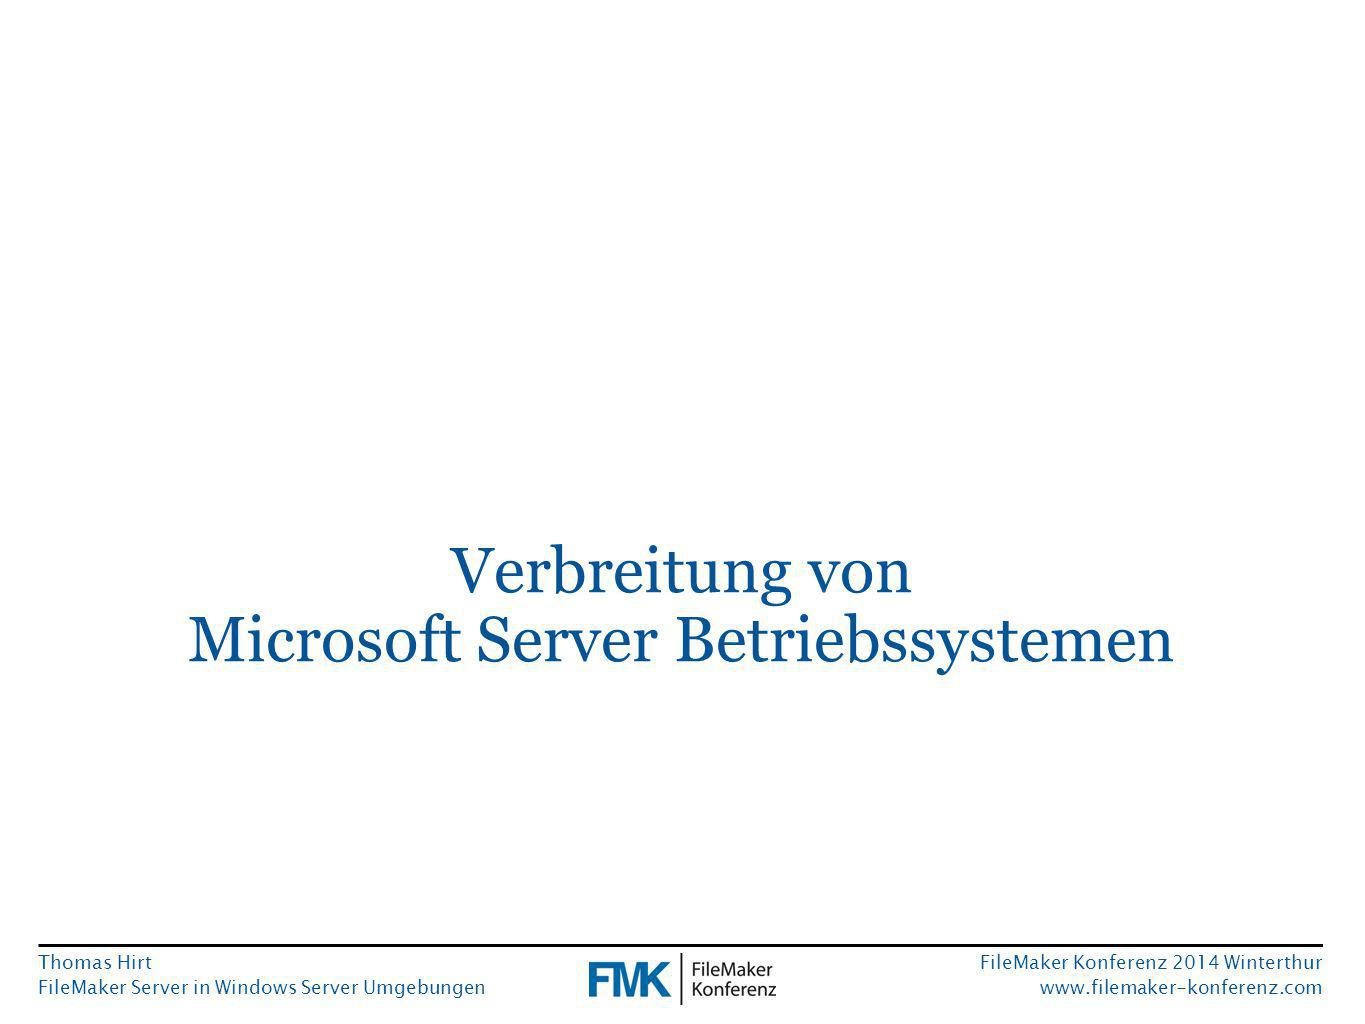 Thomas Hirt FileMaker Server in Windows Server Umgebungen FileMaker Konferenz 2014 Winterthur www.filemaker-konferenz.com Verbreitung von Microsoft Server Betriebssystemen